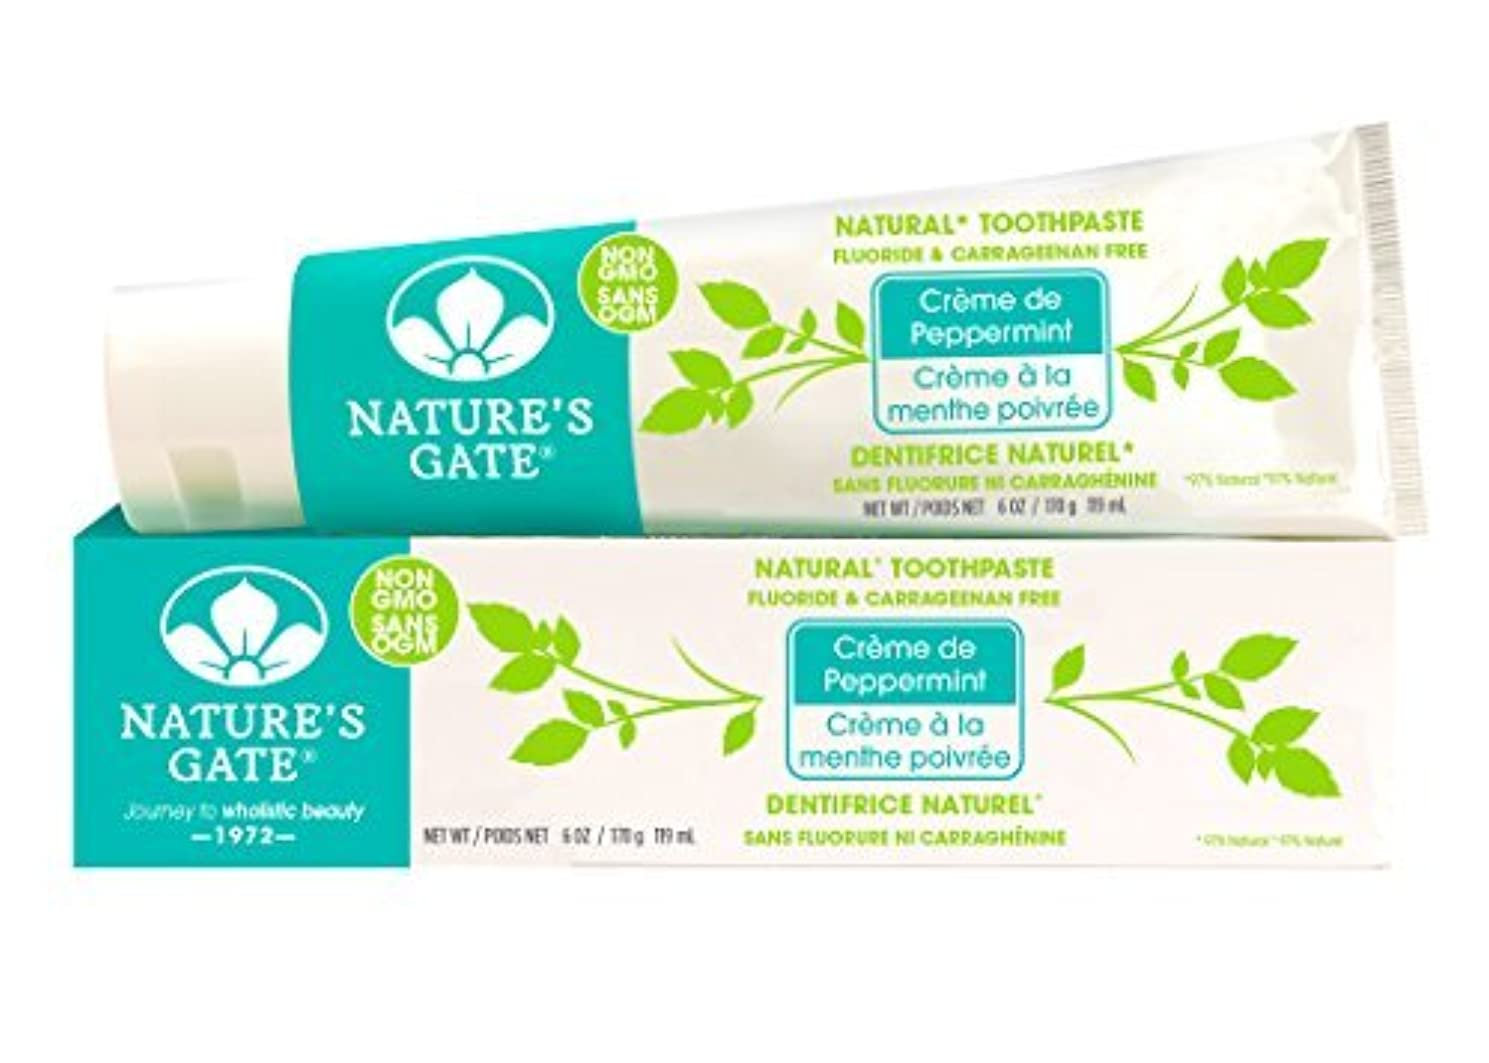 Nature's Gate Natural Toothpaste, Creme de Peppermint, 6-Ounce Tubes (Pack of 6) by Nature's Gate [並行輸入品]